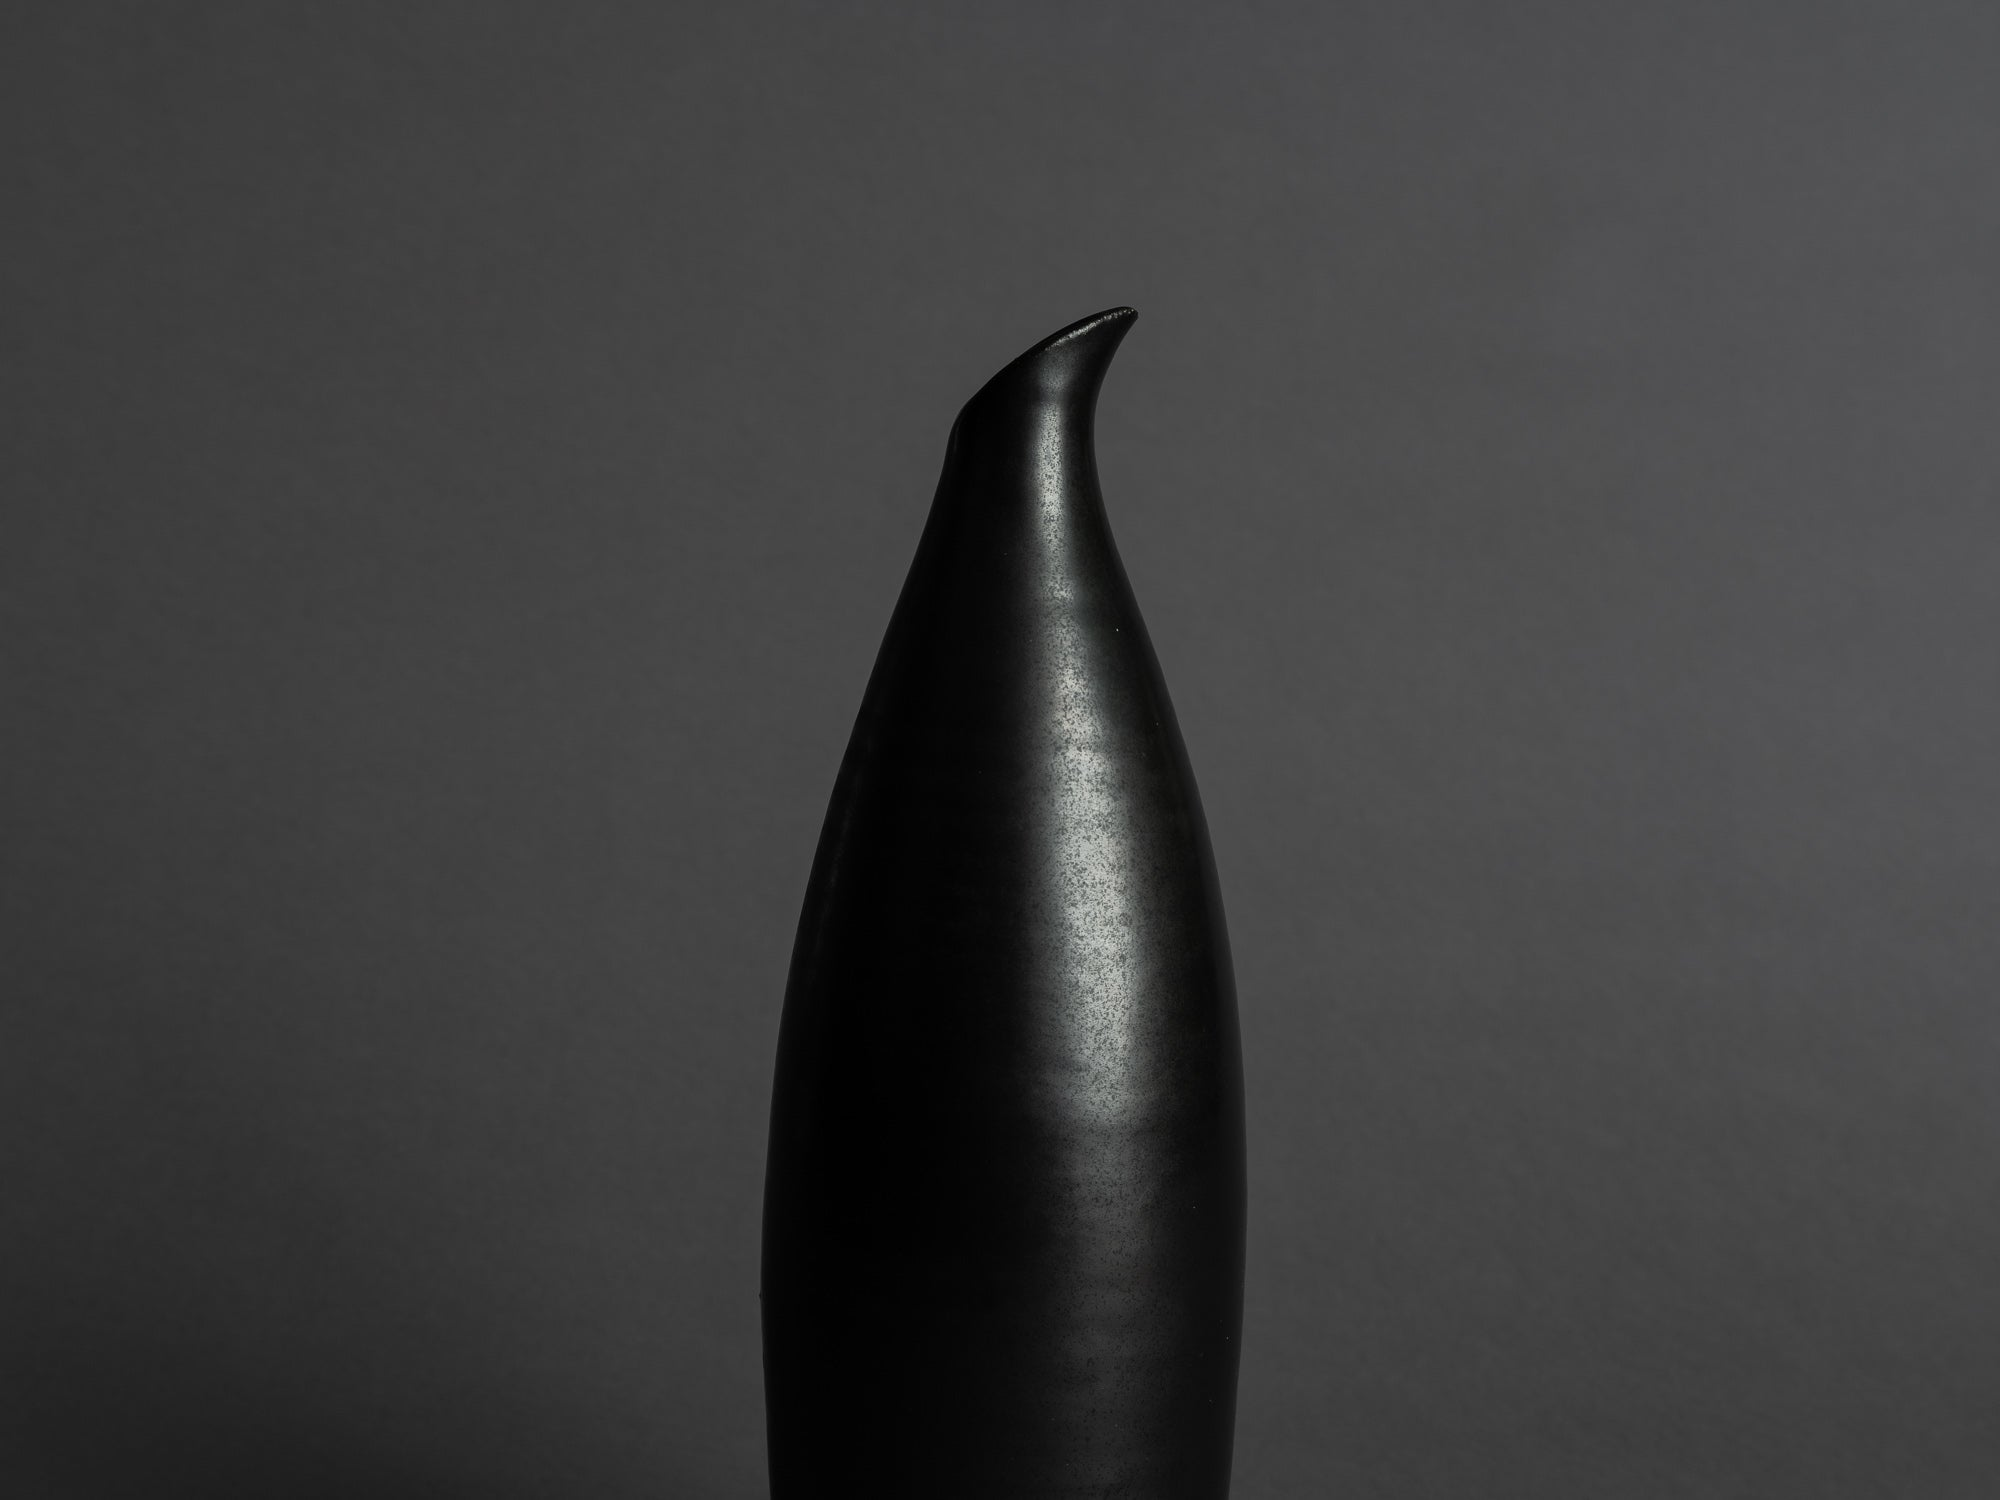 Vase bouteille des Potiers d'Accolay, France (vers 1955)..Freeform bottleshaped Vase by les Potiers d'Accolay, France (ca 1955)